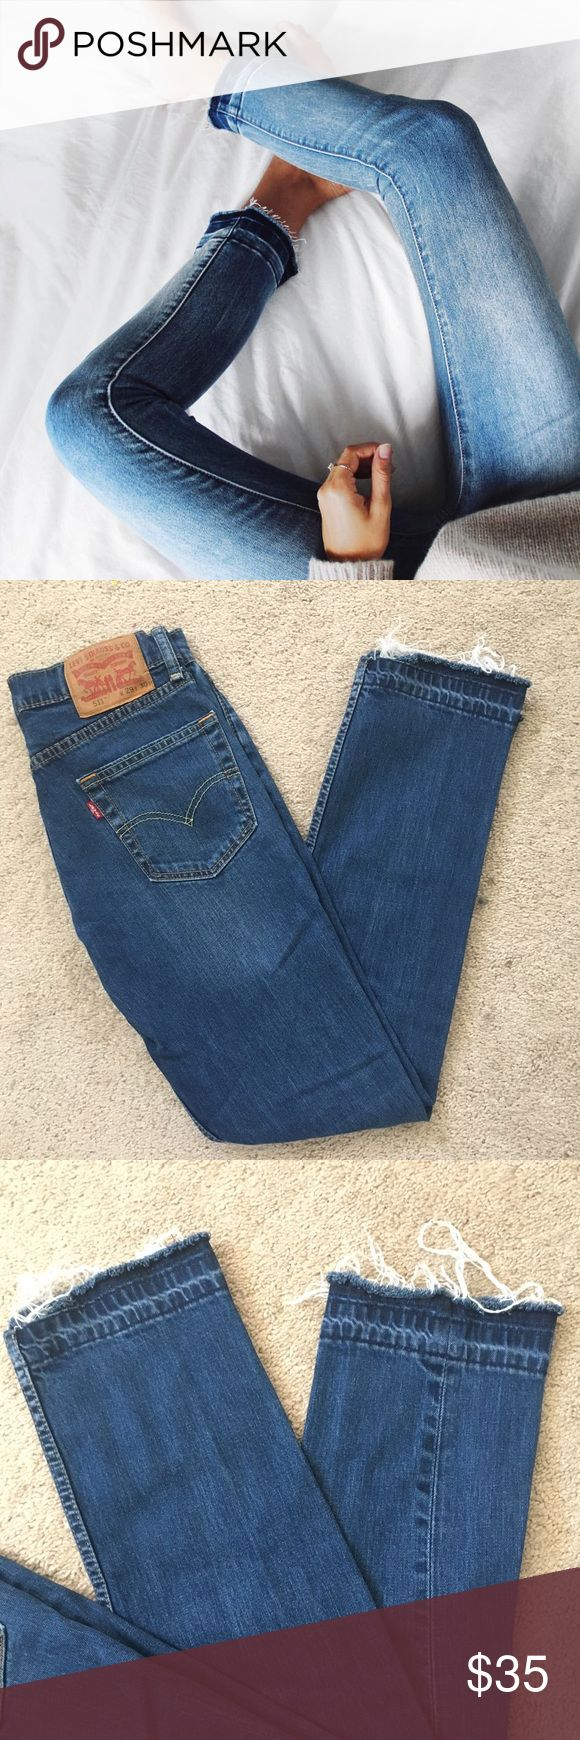 Raw Edge Levi Denim Jeans Perfectly on trend denim jeans from Levi! Great straight leg style for that casual look. In great condition, no visible signs of wear. (Note first picture is not the actual pair on sale, just a 'trend example'. Levi's Jeans Straight Leg